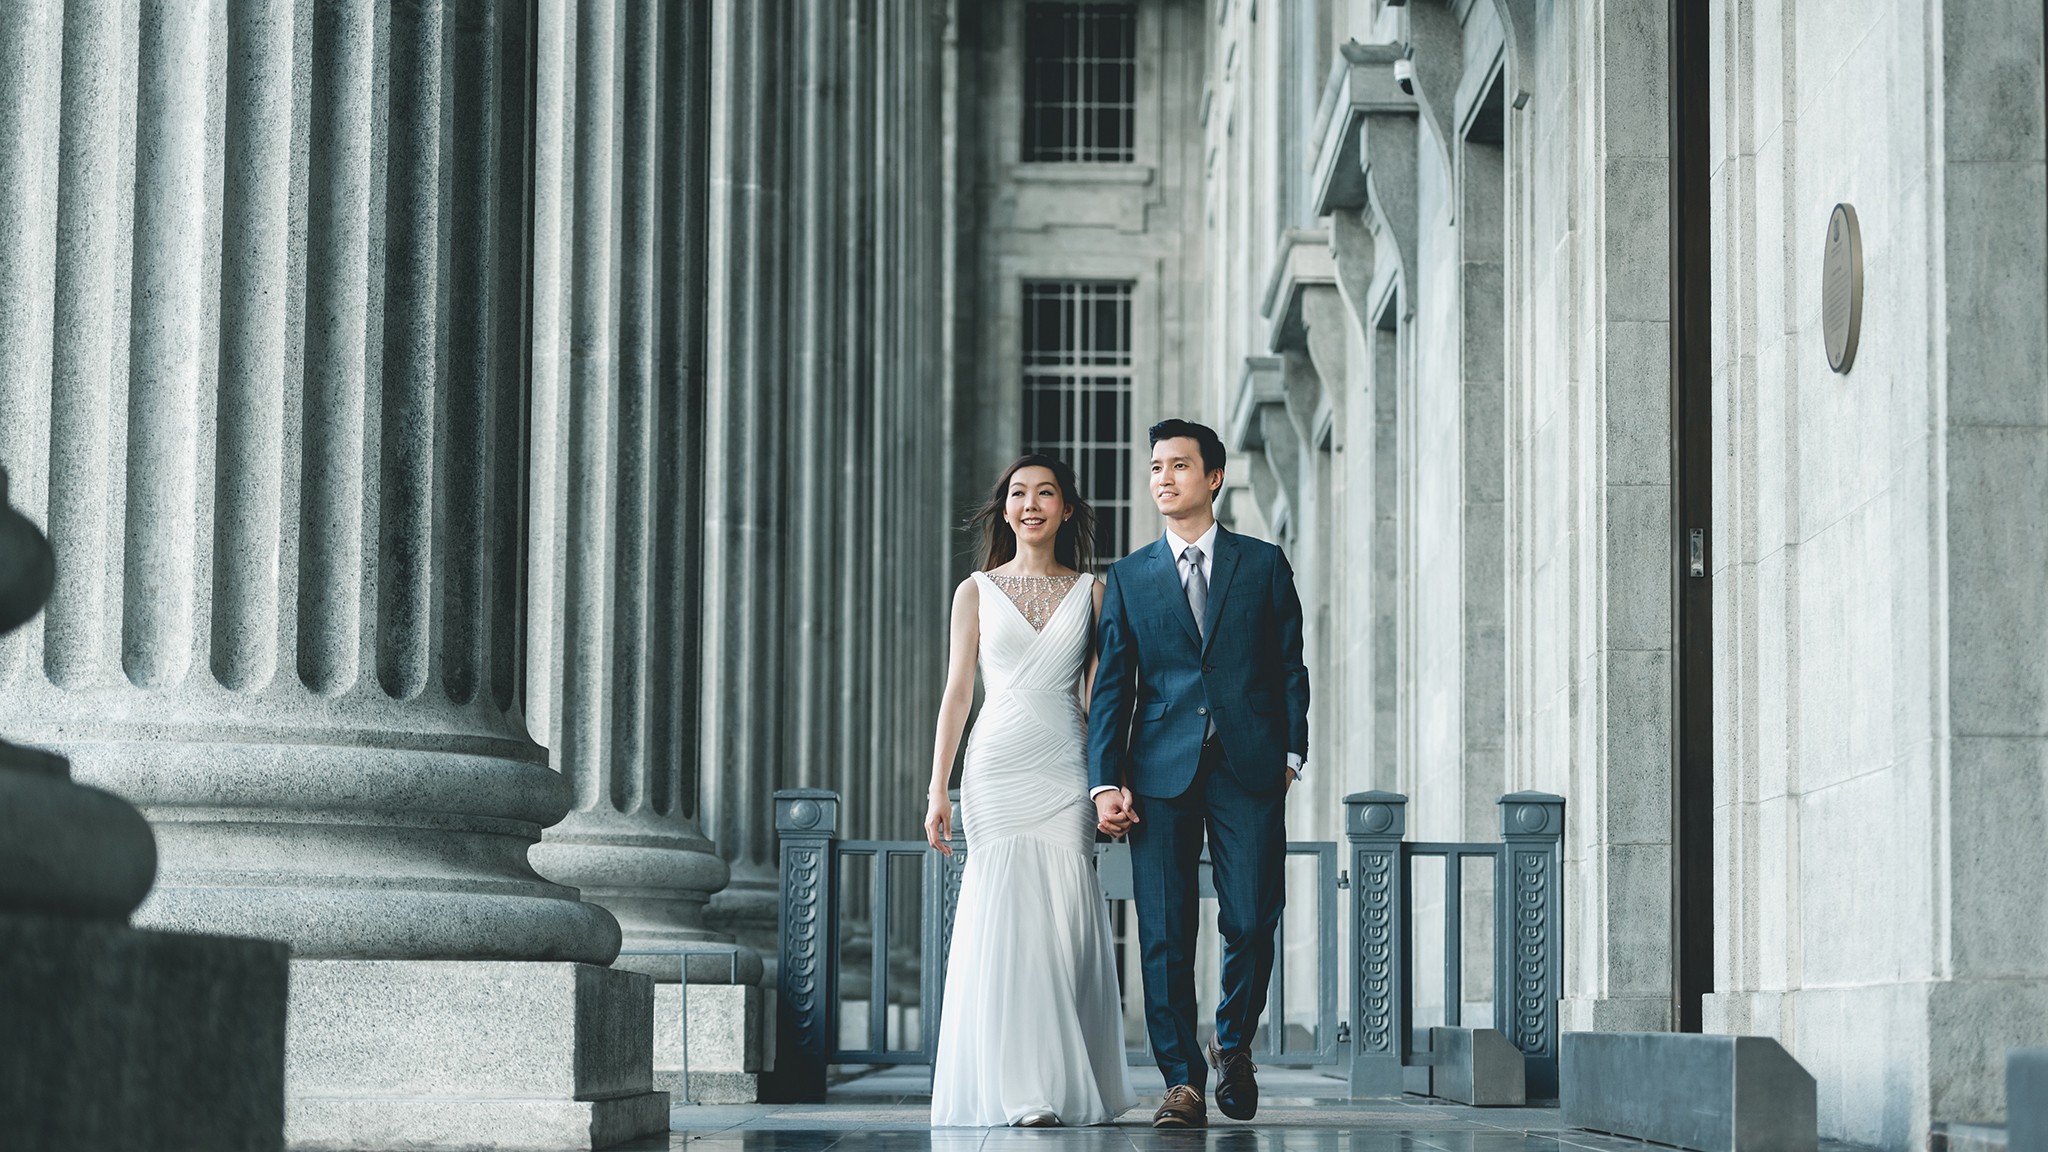 Prewedding National Gallery 00002.JPG